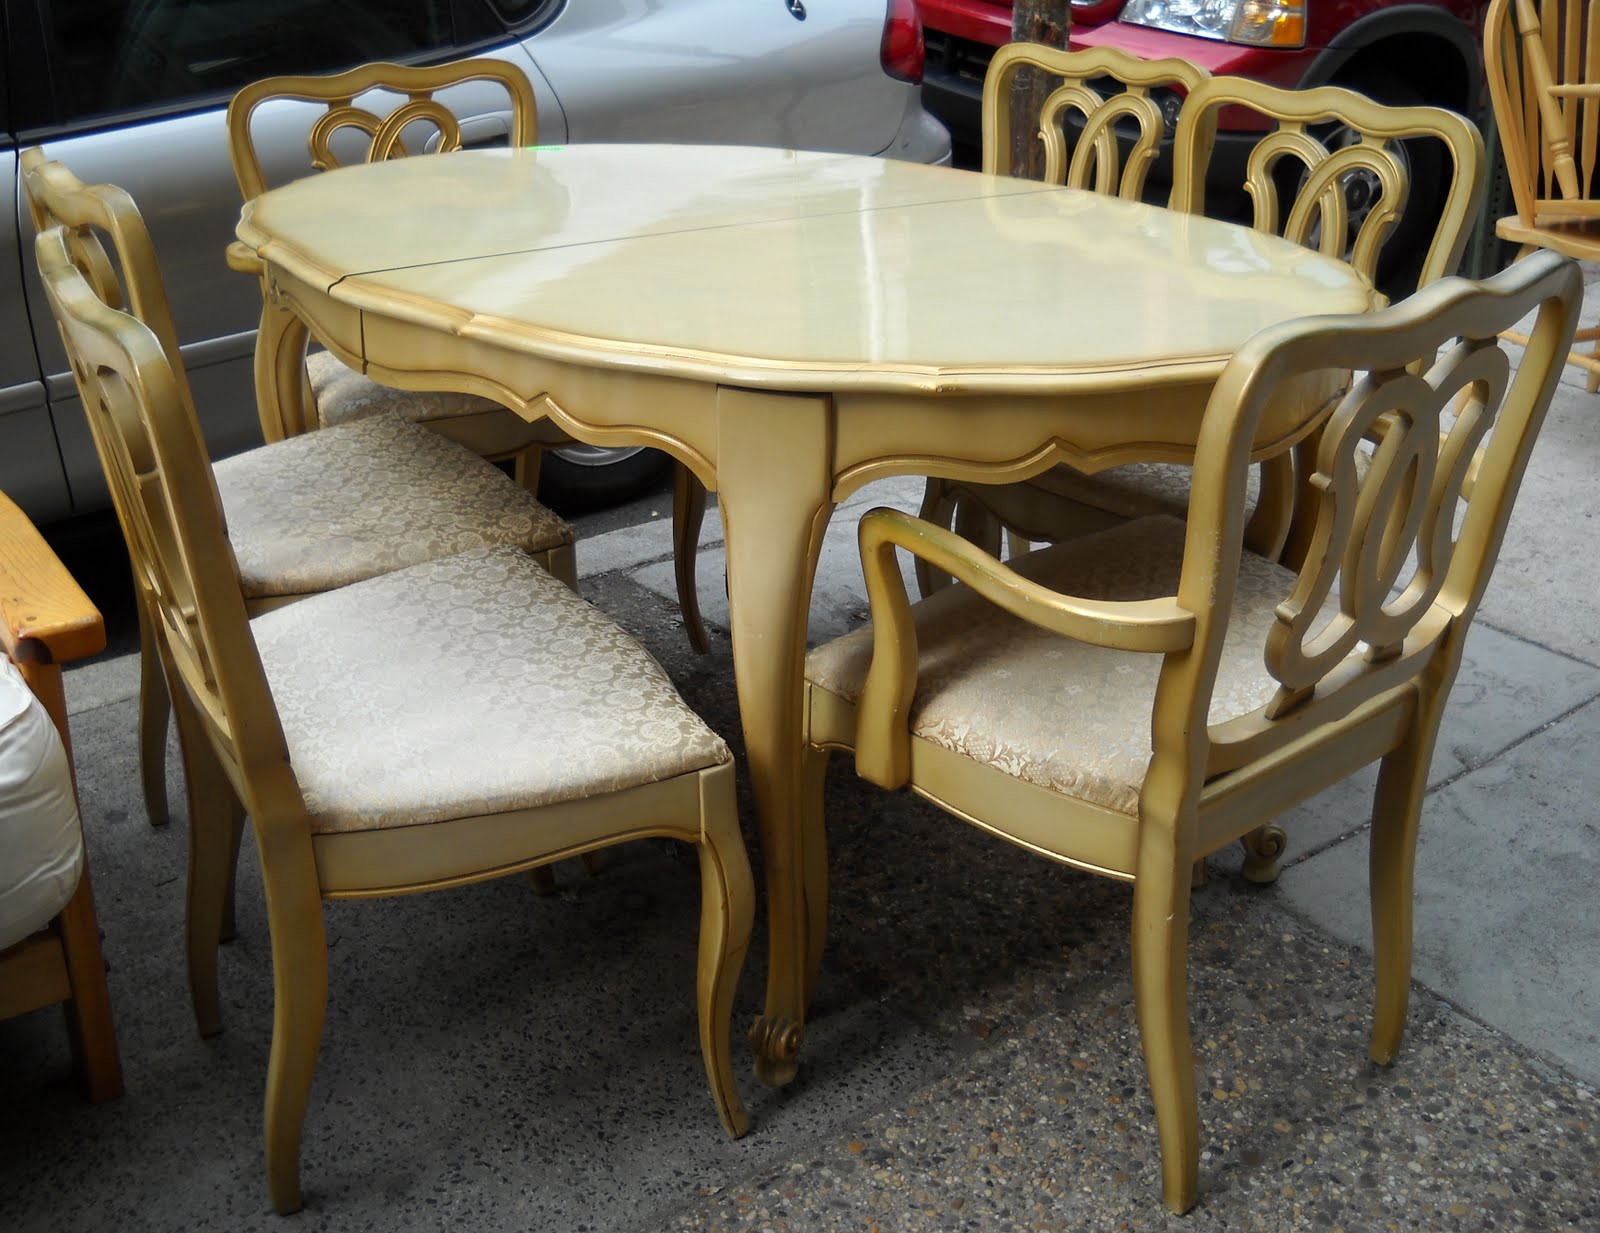 Beautiful French Provincial Dining Set Includes A Buffet And Table + 6  Chairs. Sold Separately @ $150 For The Buffet And $165 For Table And Six  Chairs.